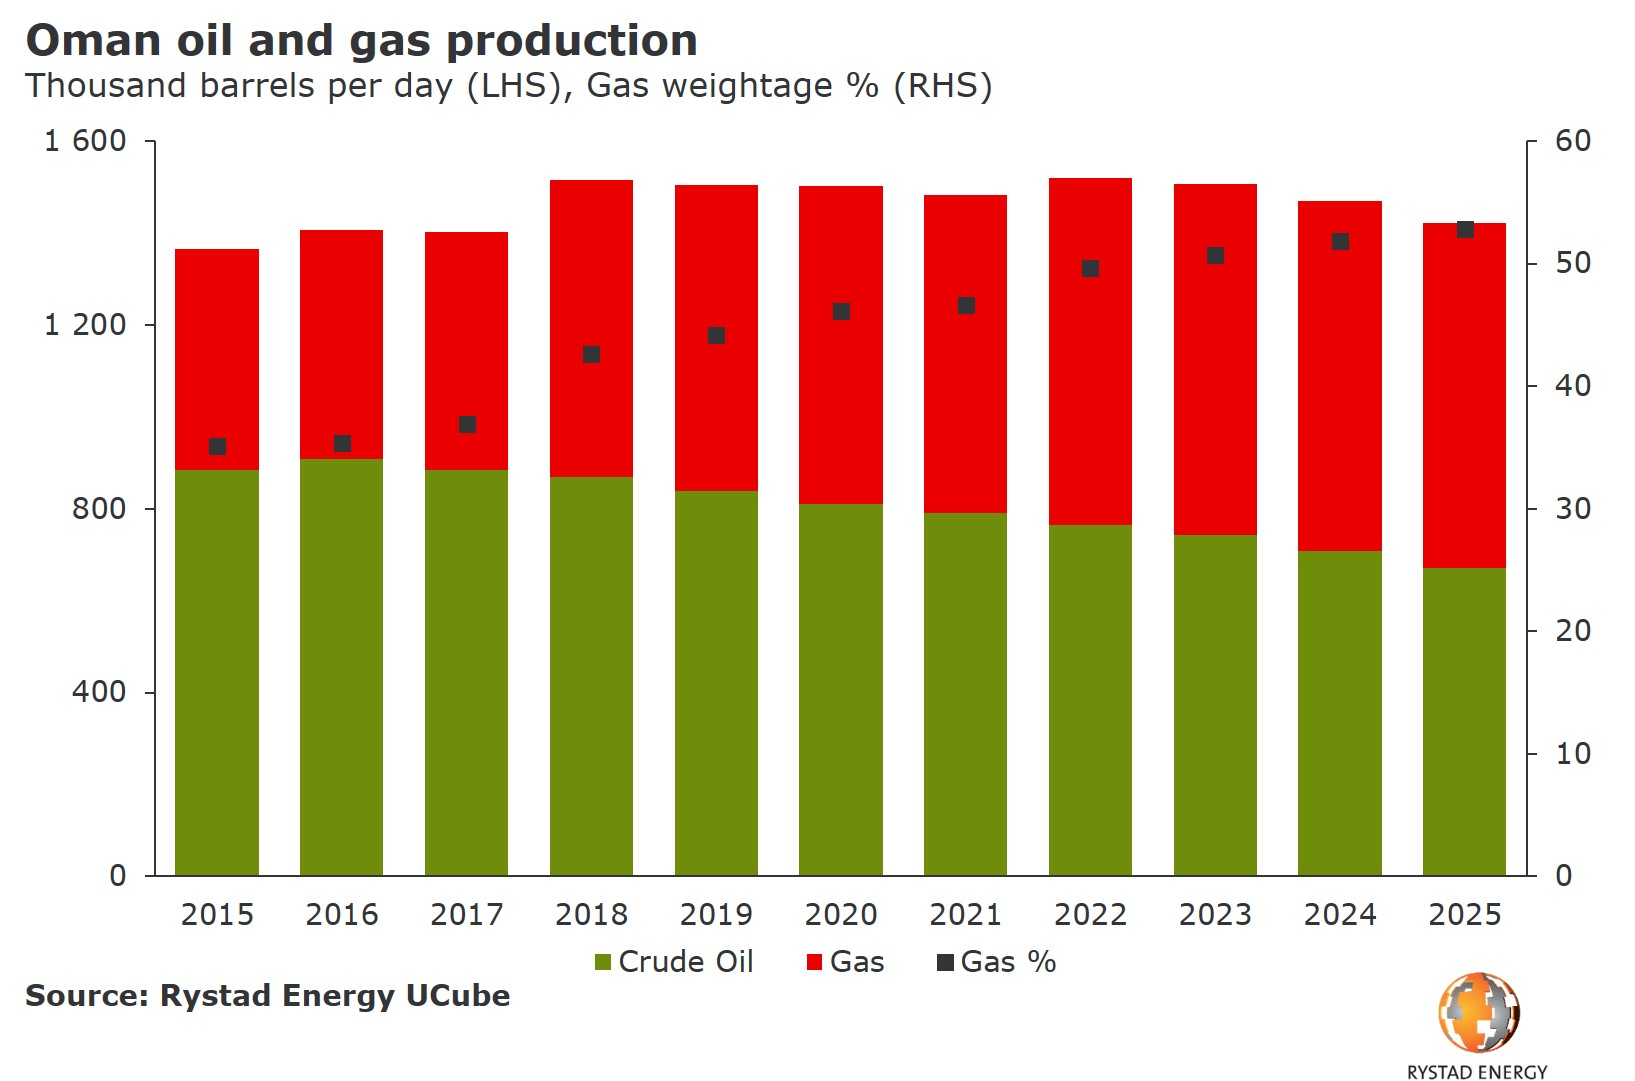 Abar chart showing Oman oil and gas production from 2015 to 2025. Source: Rystad Energy UCube